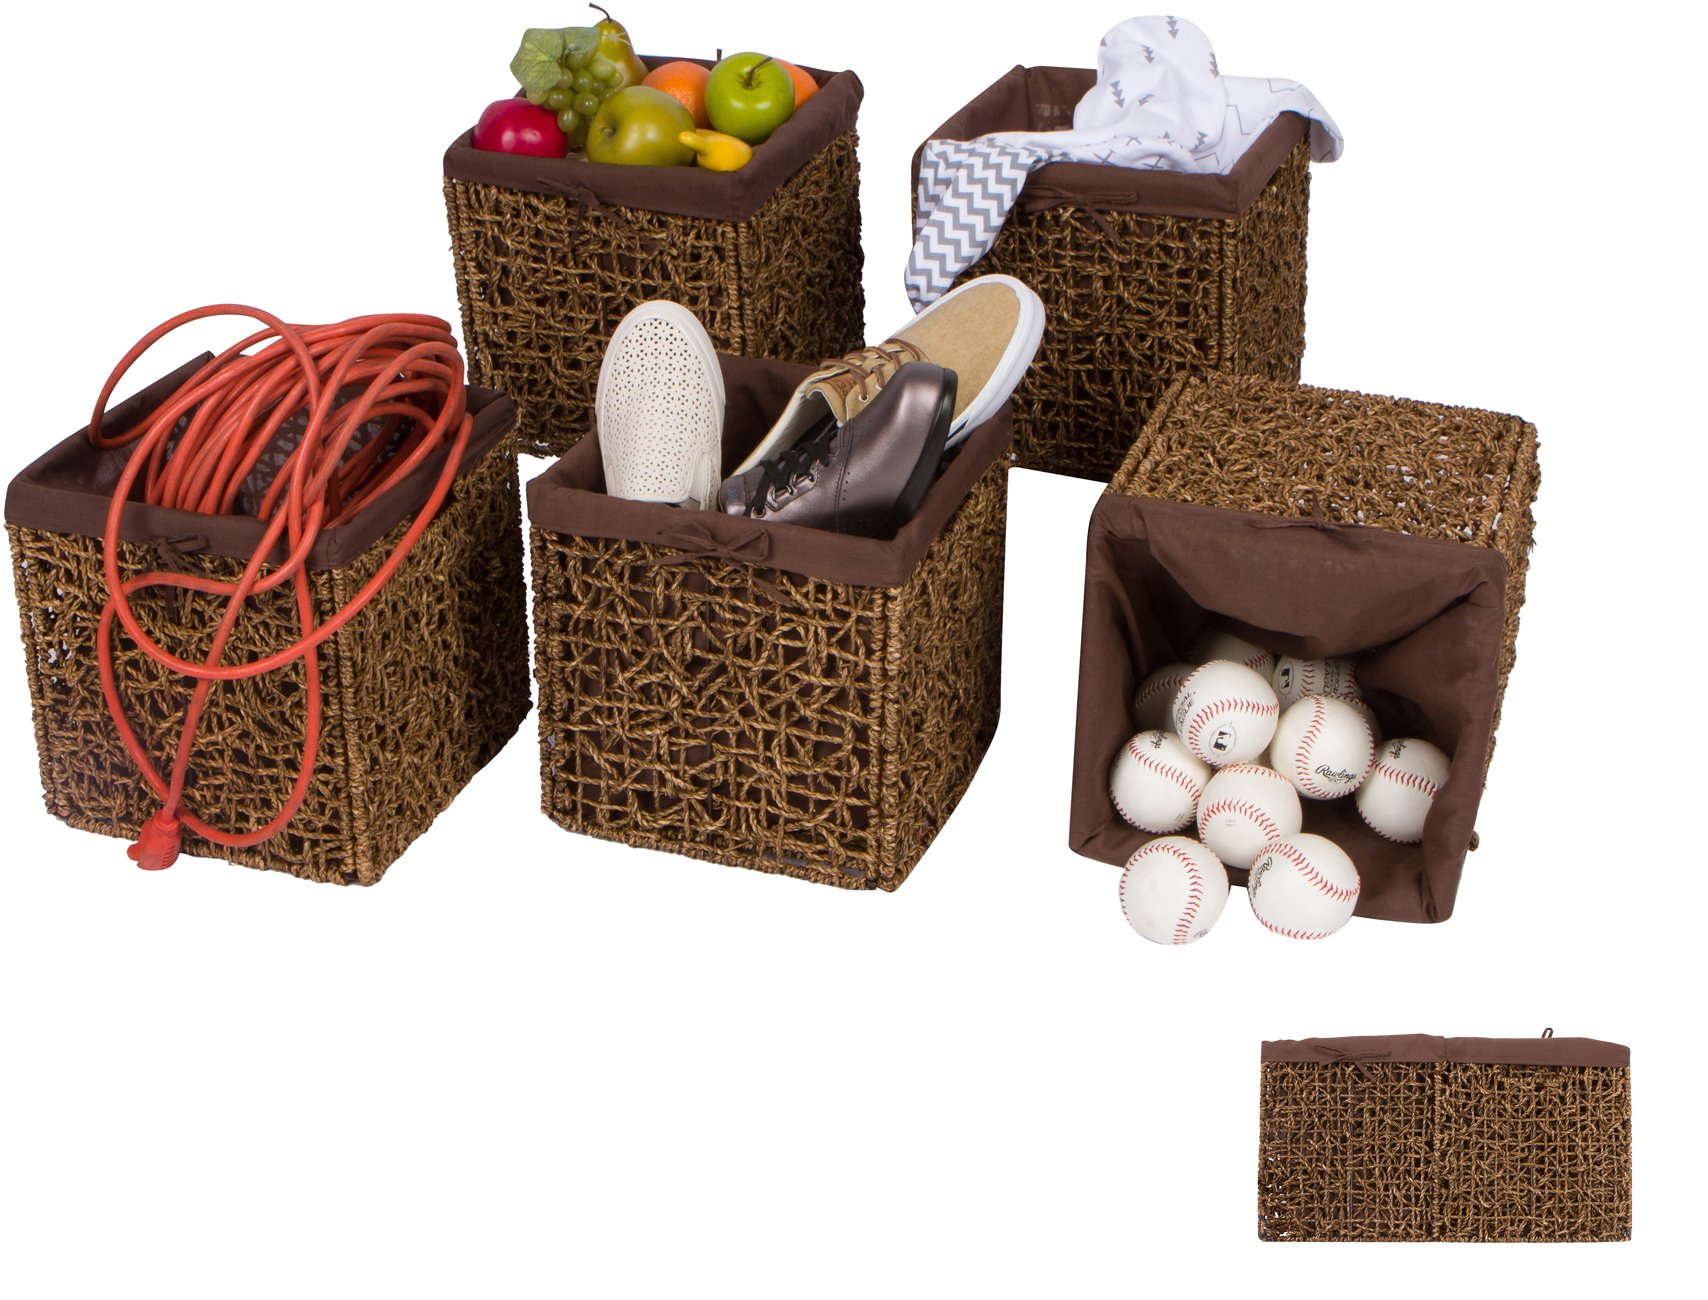 "Trademark Innovations 10.6"" Foldable Seagrass Storage Basket with Liner and Iron Wire Frame by (Set of 5) - Each basket measures 10.6""L x 10.6""W x 10.6""H and comes as a set of 5 Made from beautiful seagrass over an iron wire frame with fabric liner. Color may vary slightly Folds flat for easy storage - living-room-decor, living-room, baskets-storage - 81L4DT5%2BZ L -"